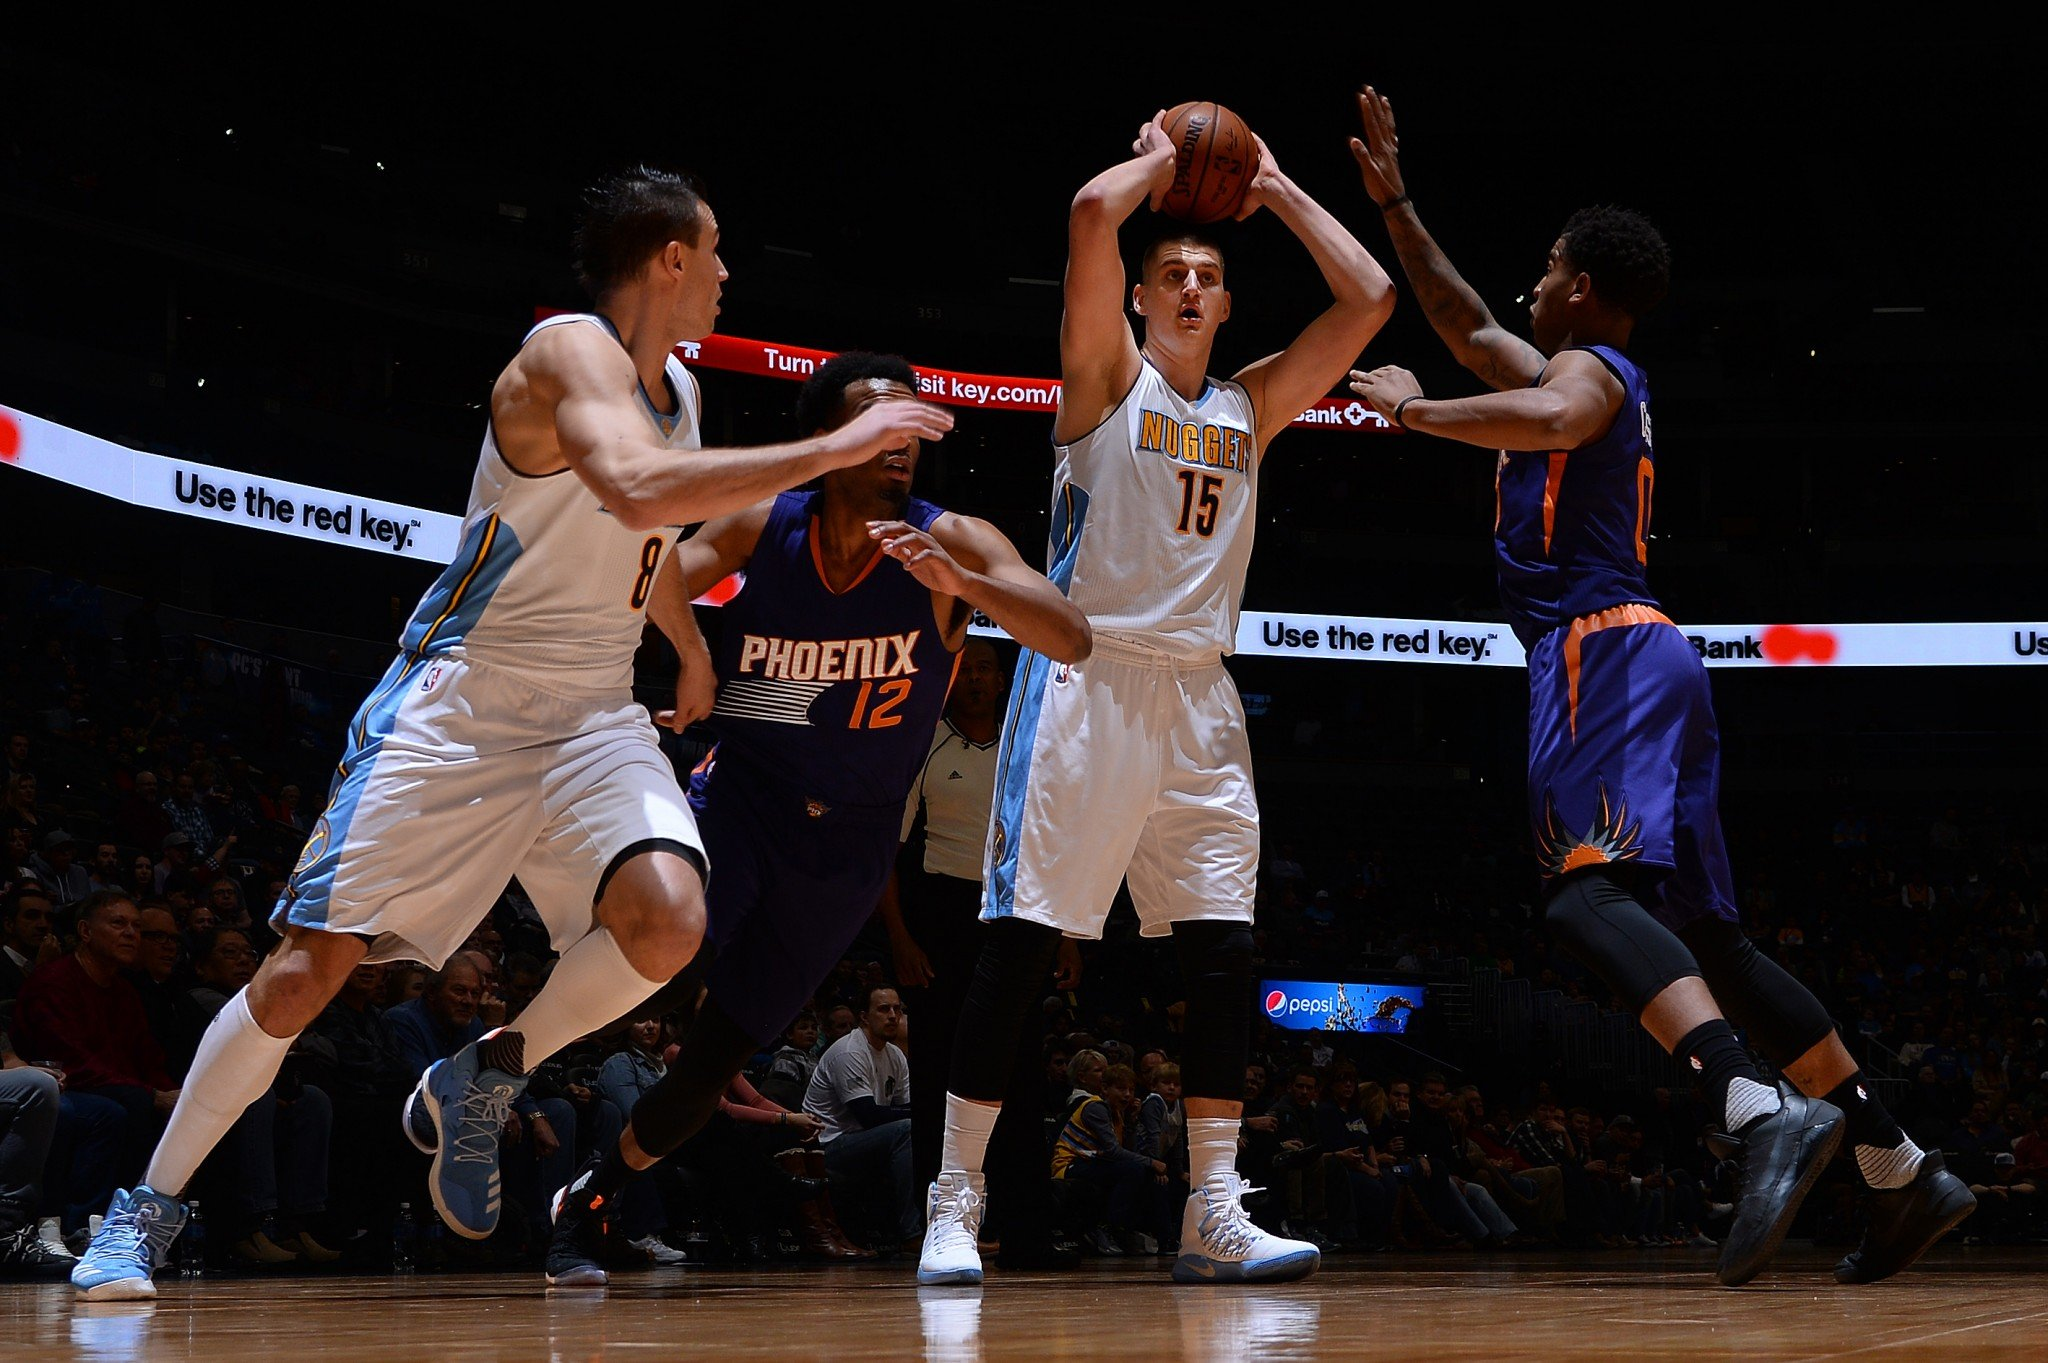 Nikola Jokic has already made the pass in his mind. (Getty Images)